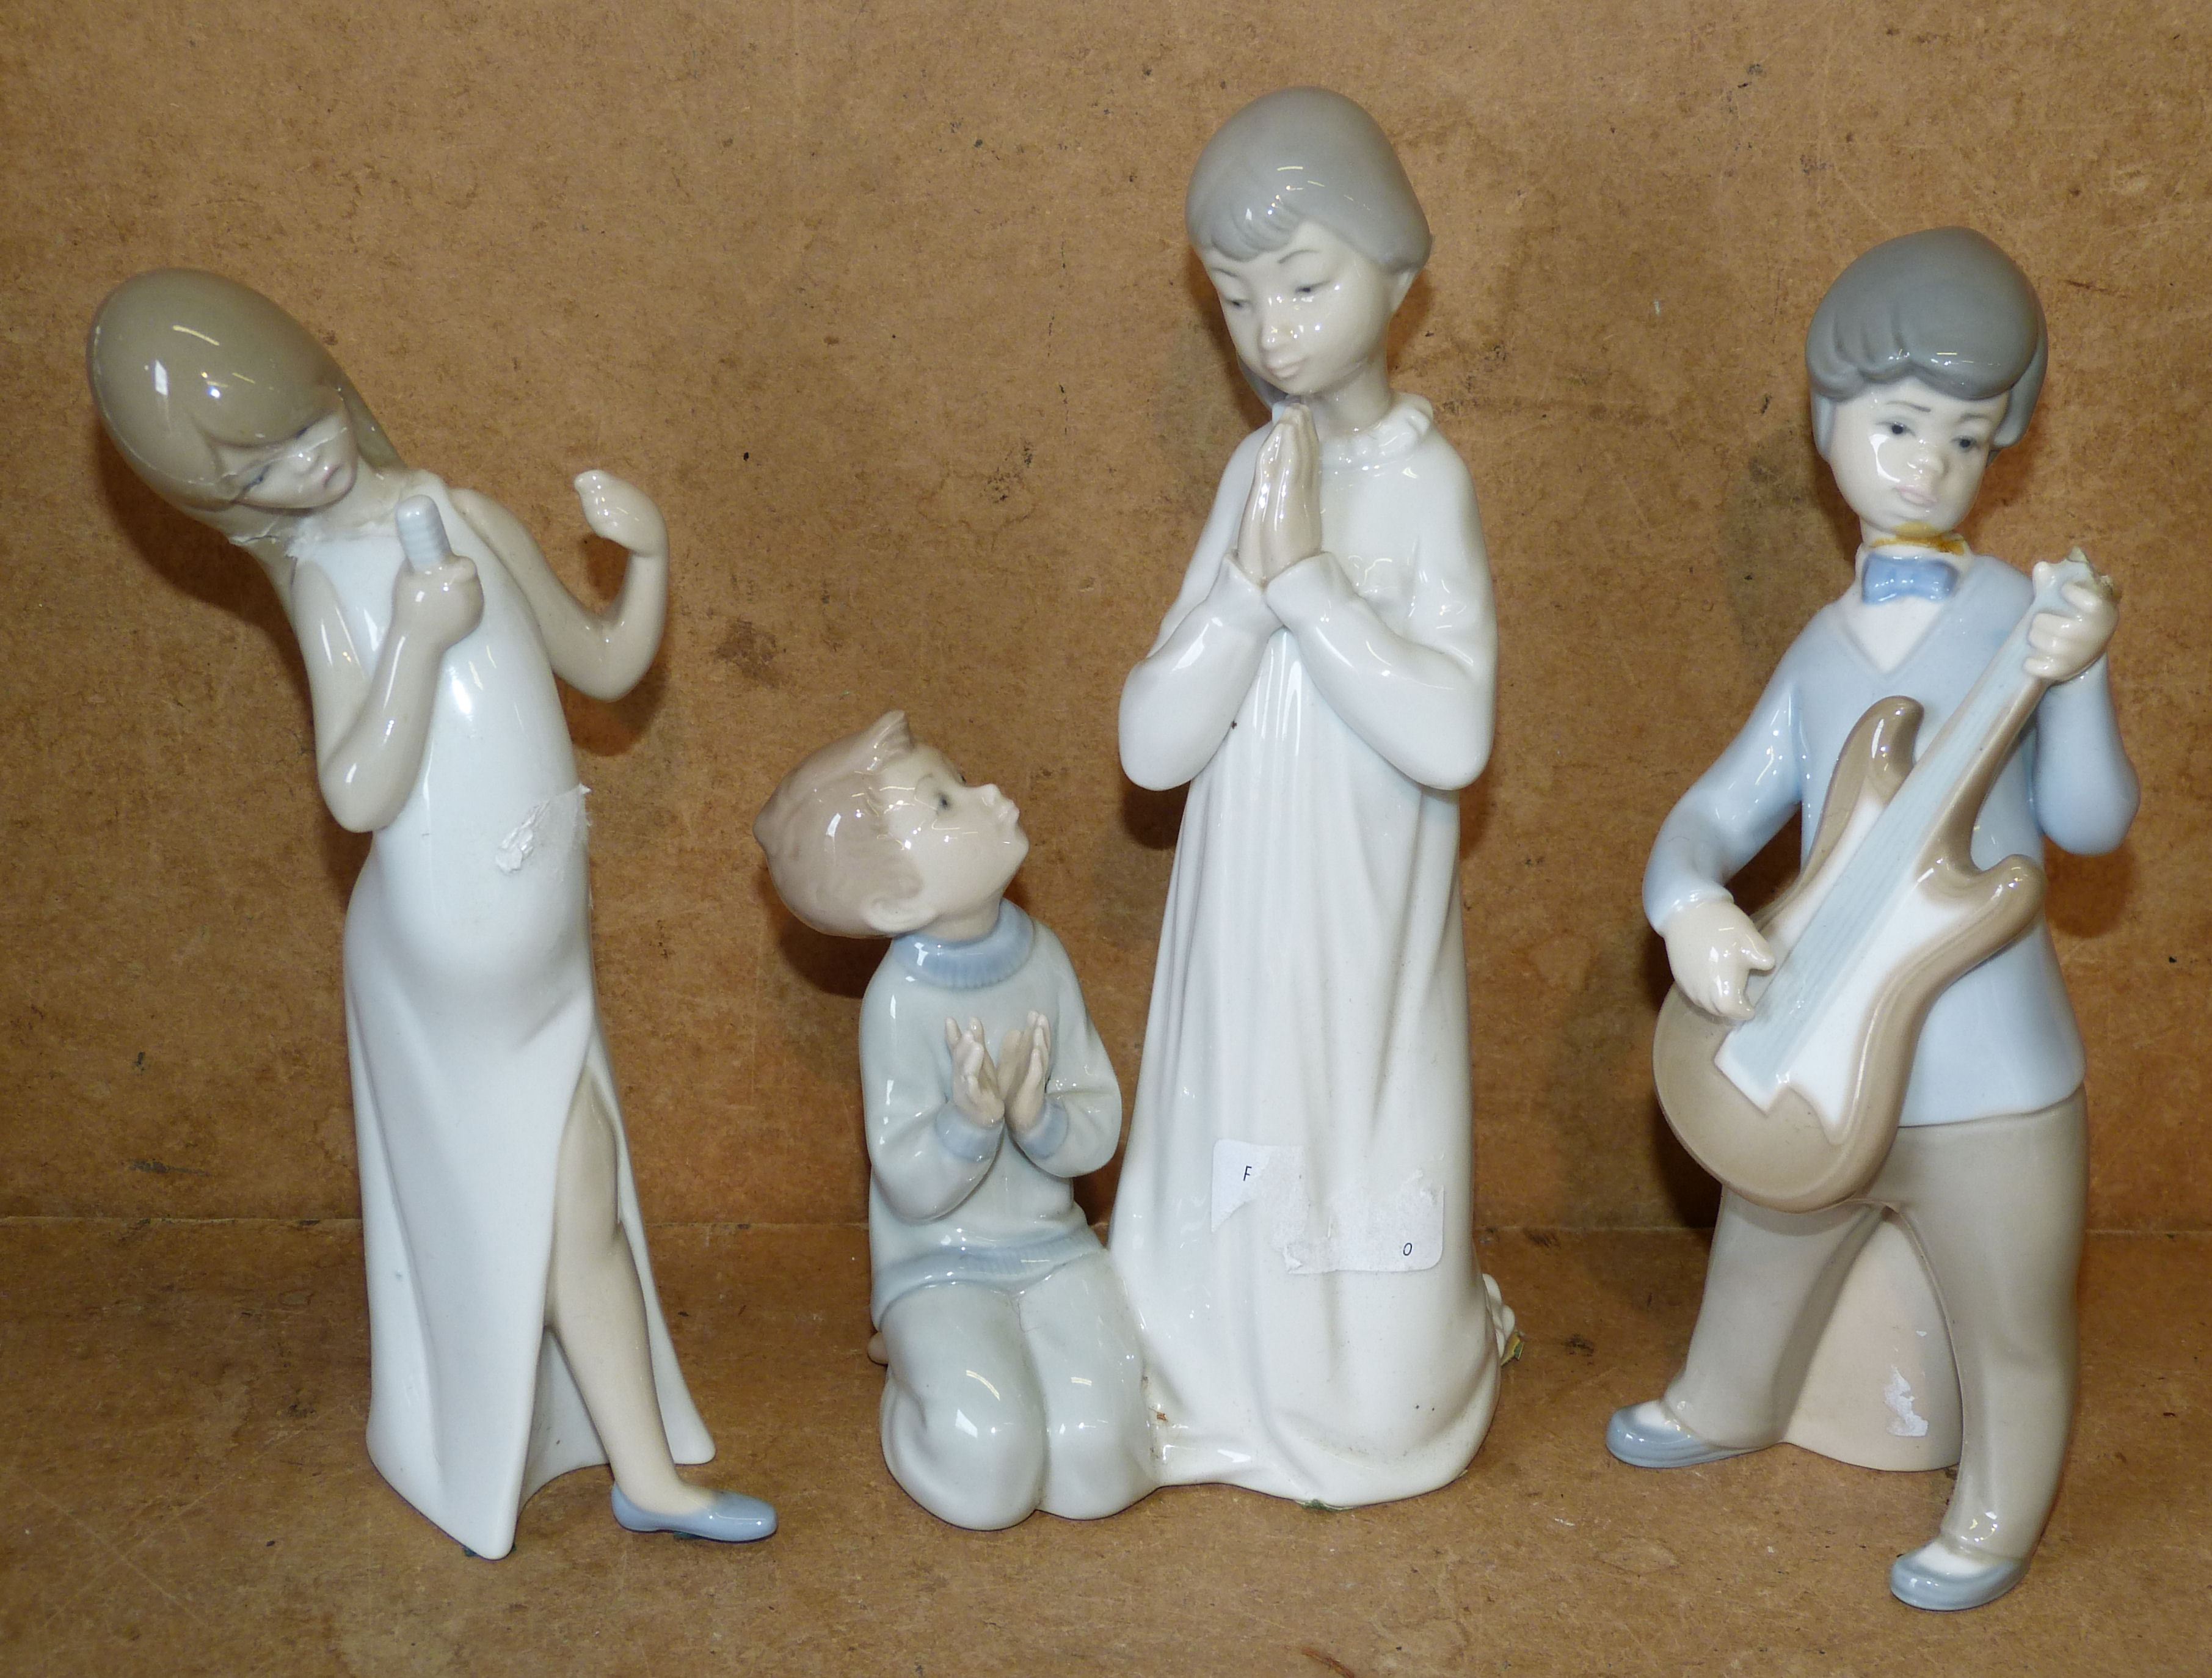 A Lladro Group of 2 children playing and 2 other Lladro figures of a singer and boy playing guitar(all a/f)